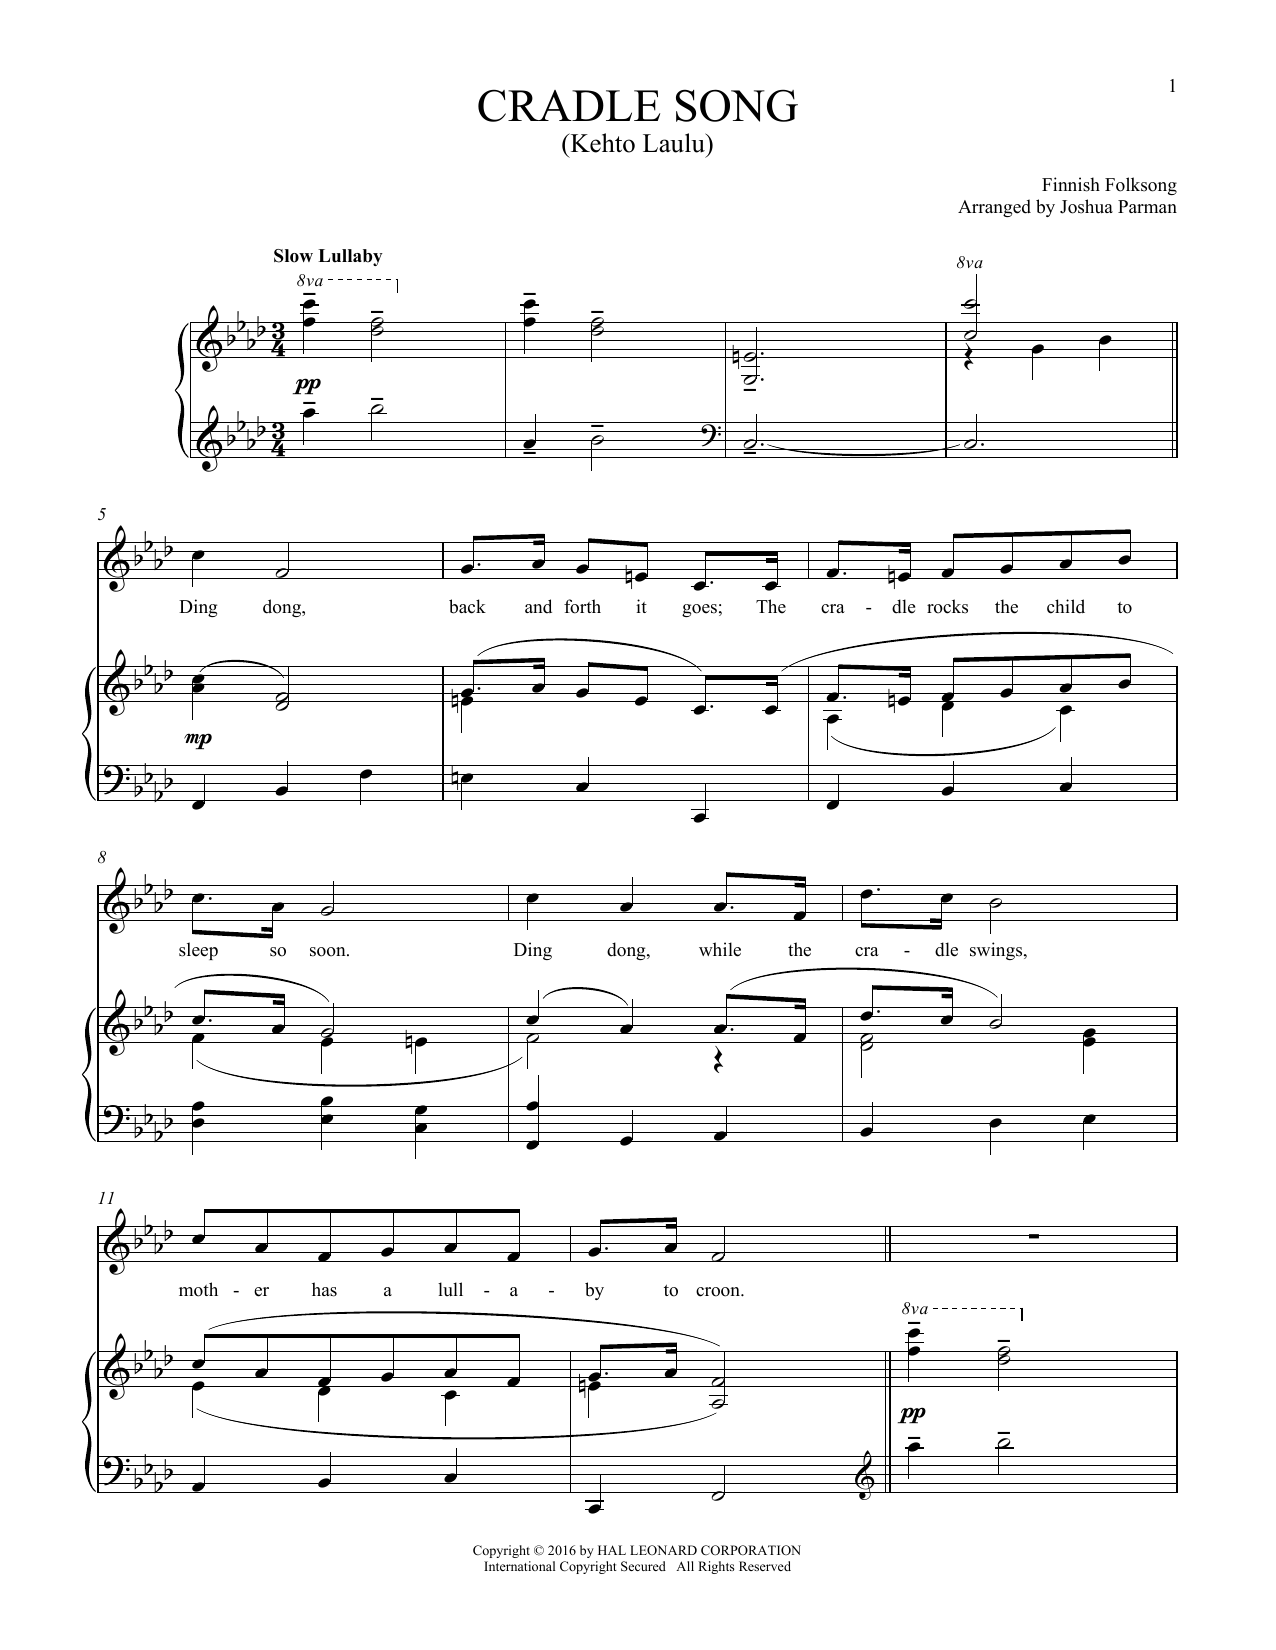 Traditional Folksong Kehto Laula (Cradle Song) sheet music notes and chords